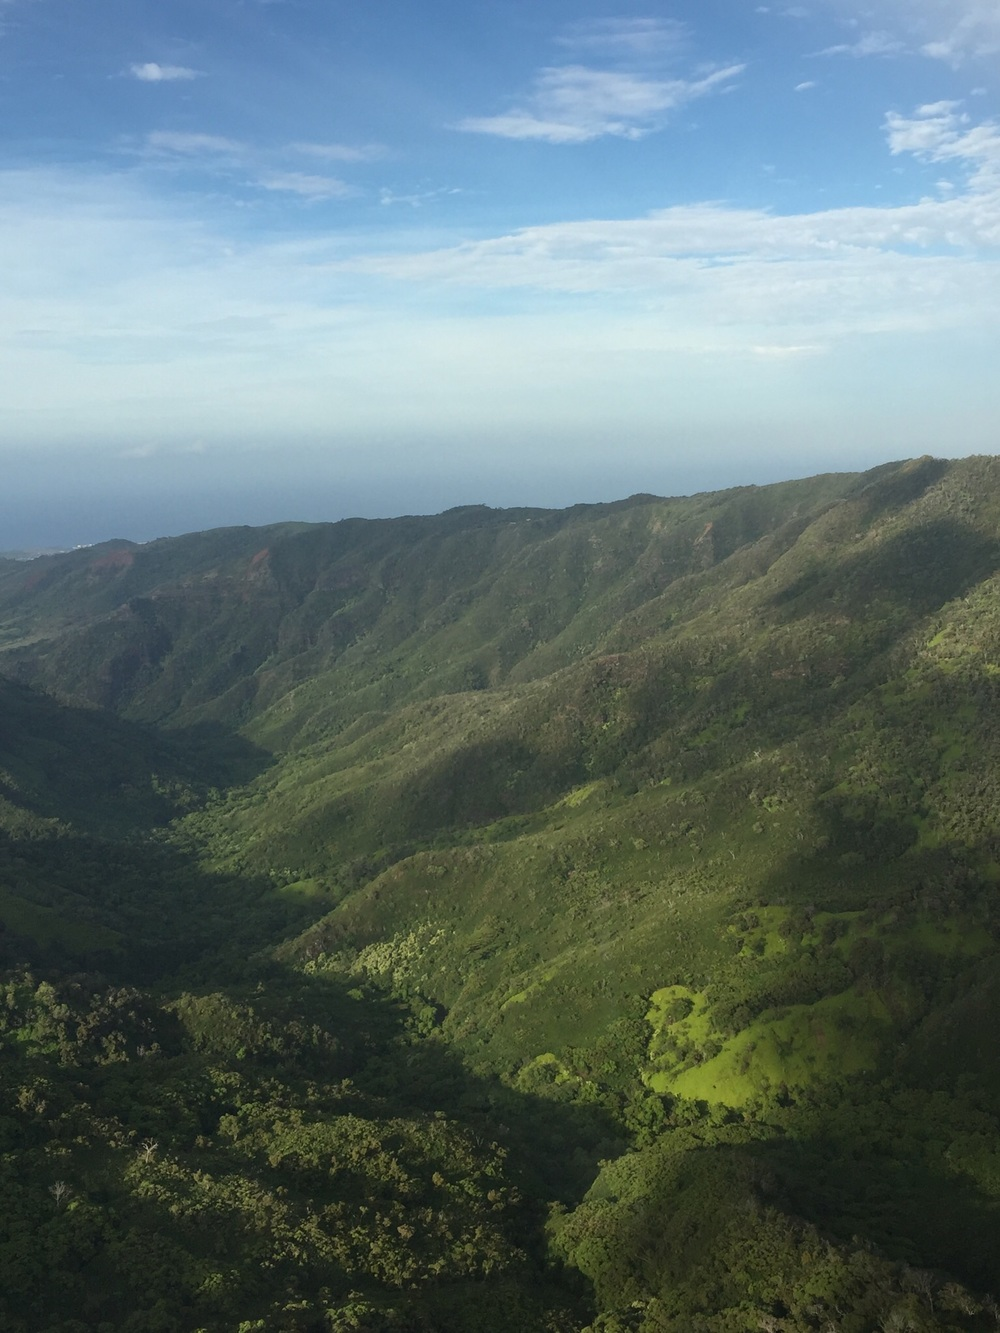 Beautiful Kauai from the air, the majority of this island inaccessible and wild